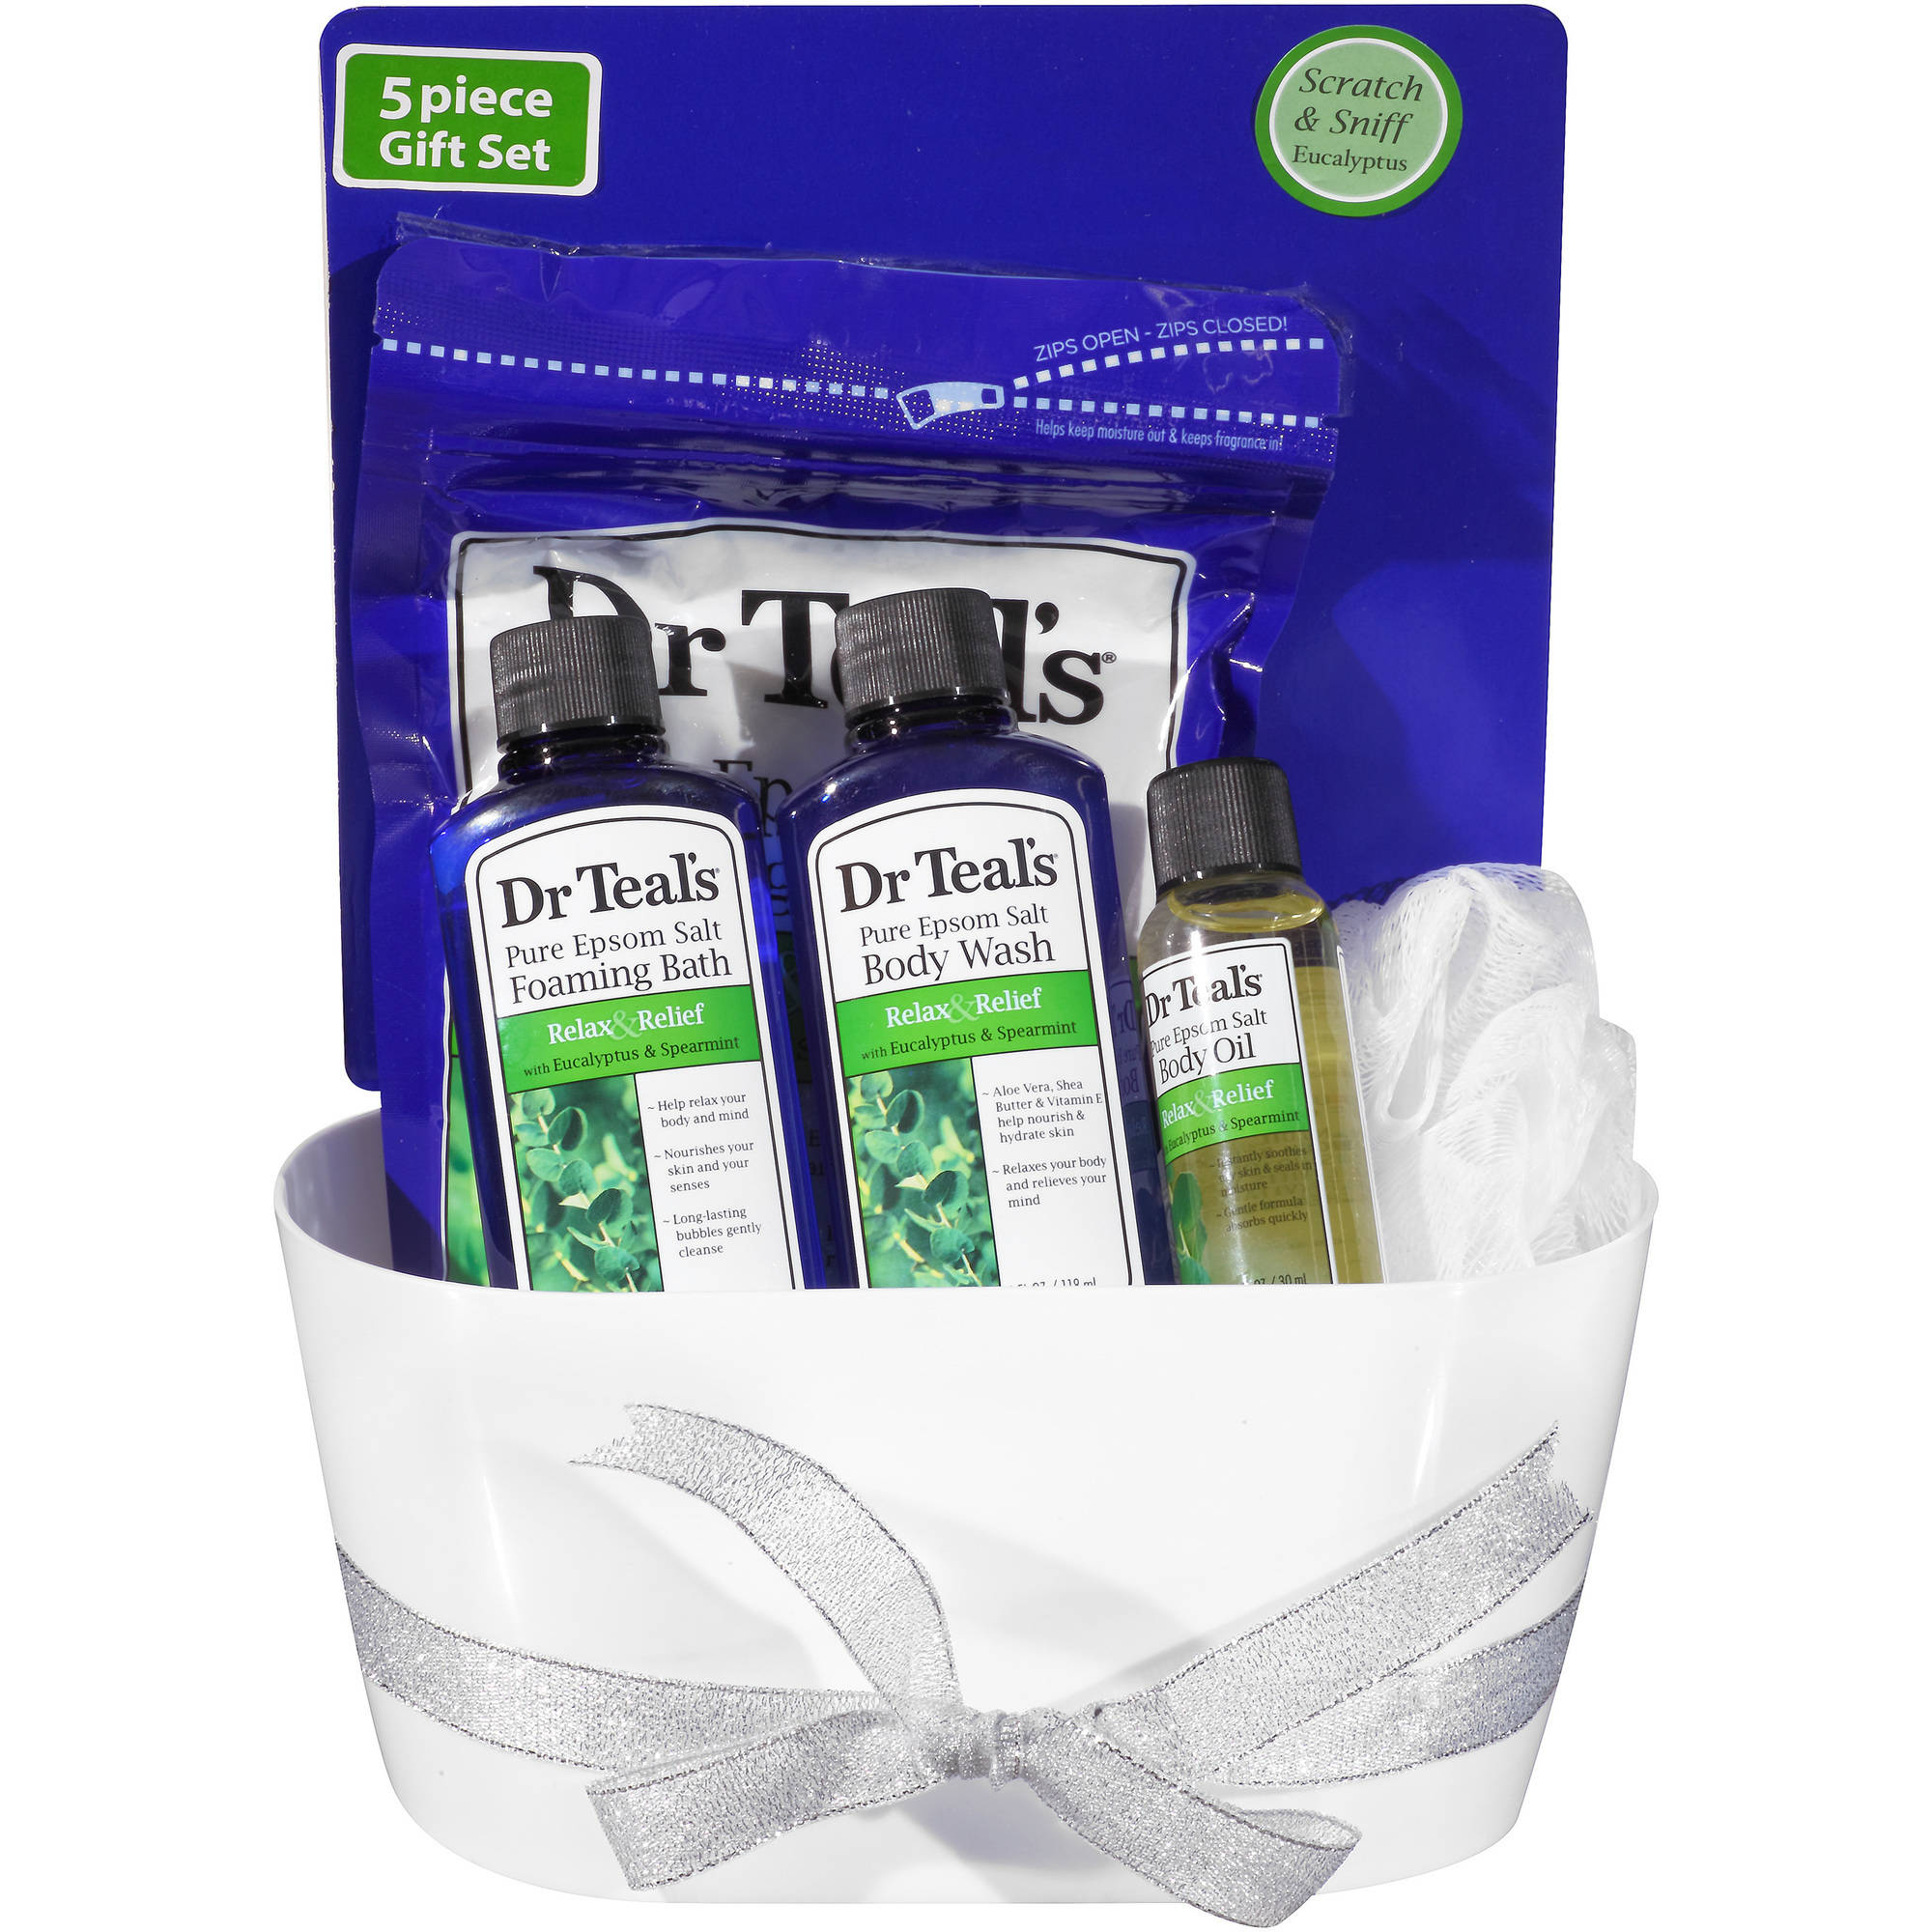 Dr Teal's Relax & Relief with Eucalyptus & Spearmint Gift Set, 5 pc